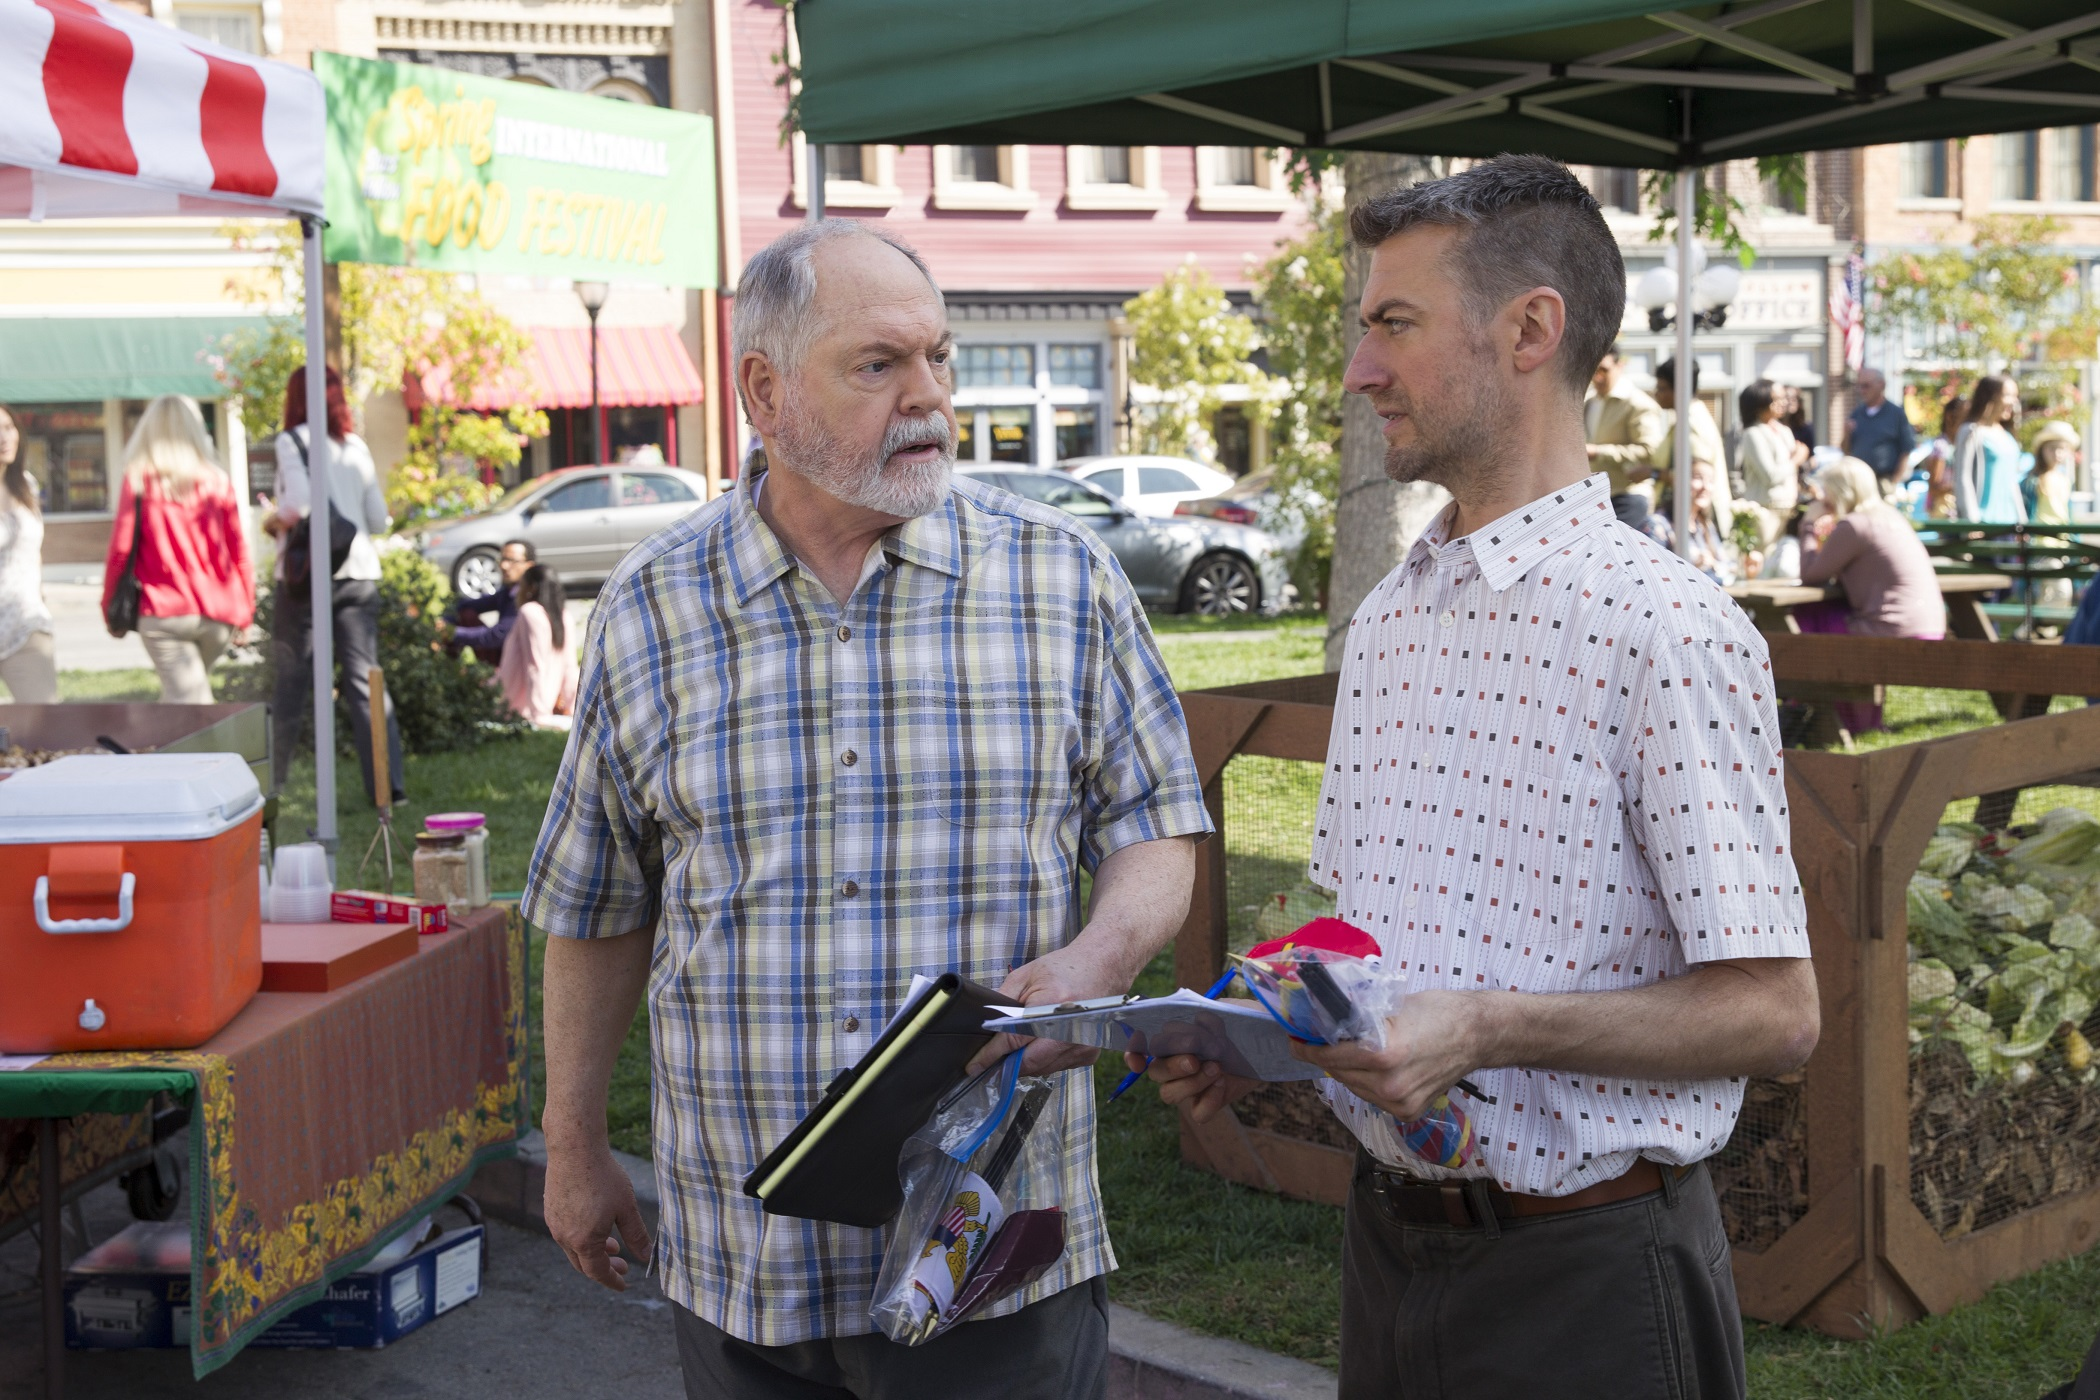 'Gilmore Girls': 3 Minor Details About Stars Hollow That Annoy Fans